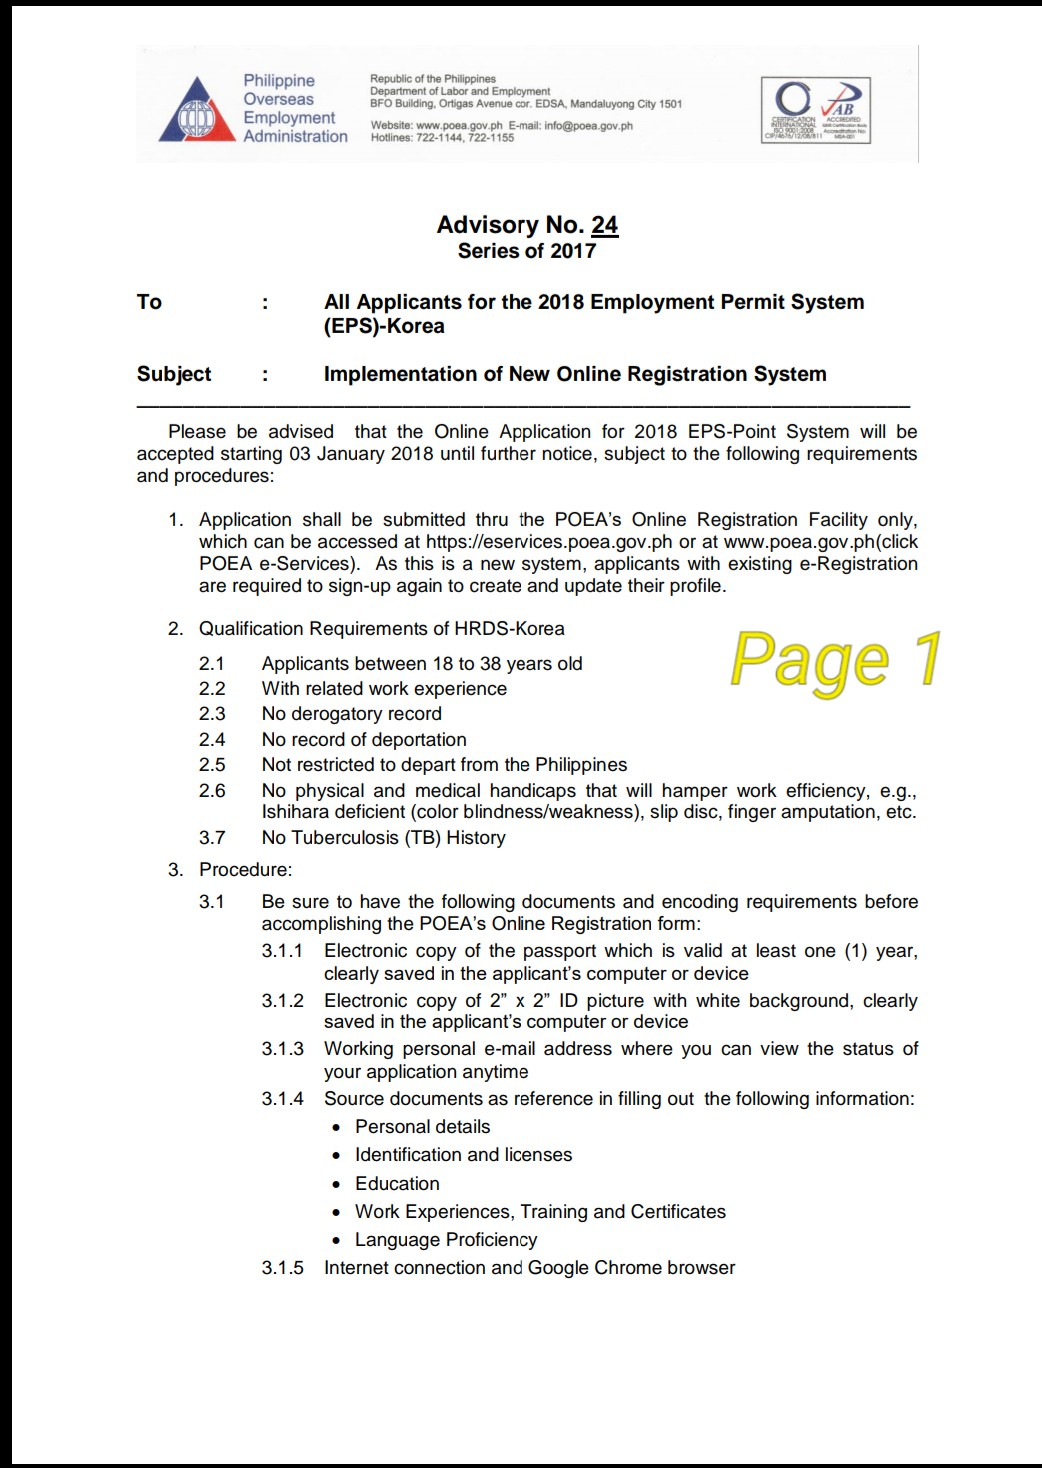 New On Line Registration System For Eps Workers In 2018 By Poea